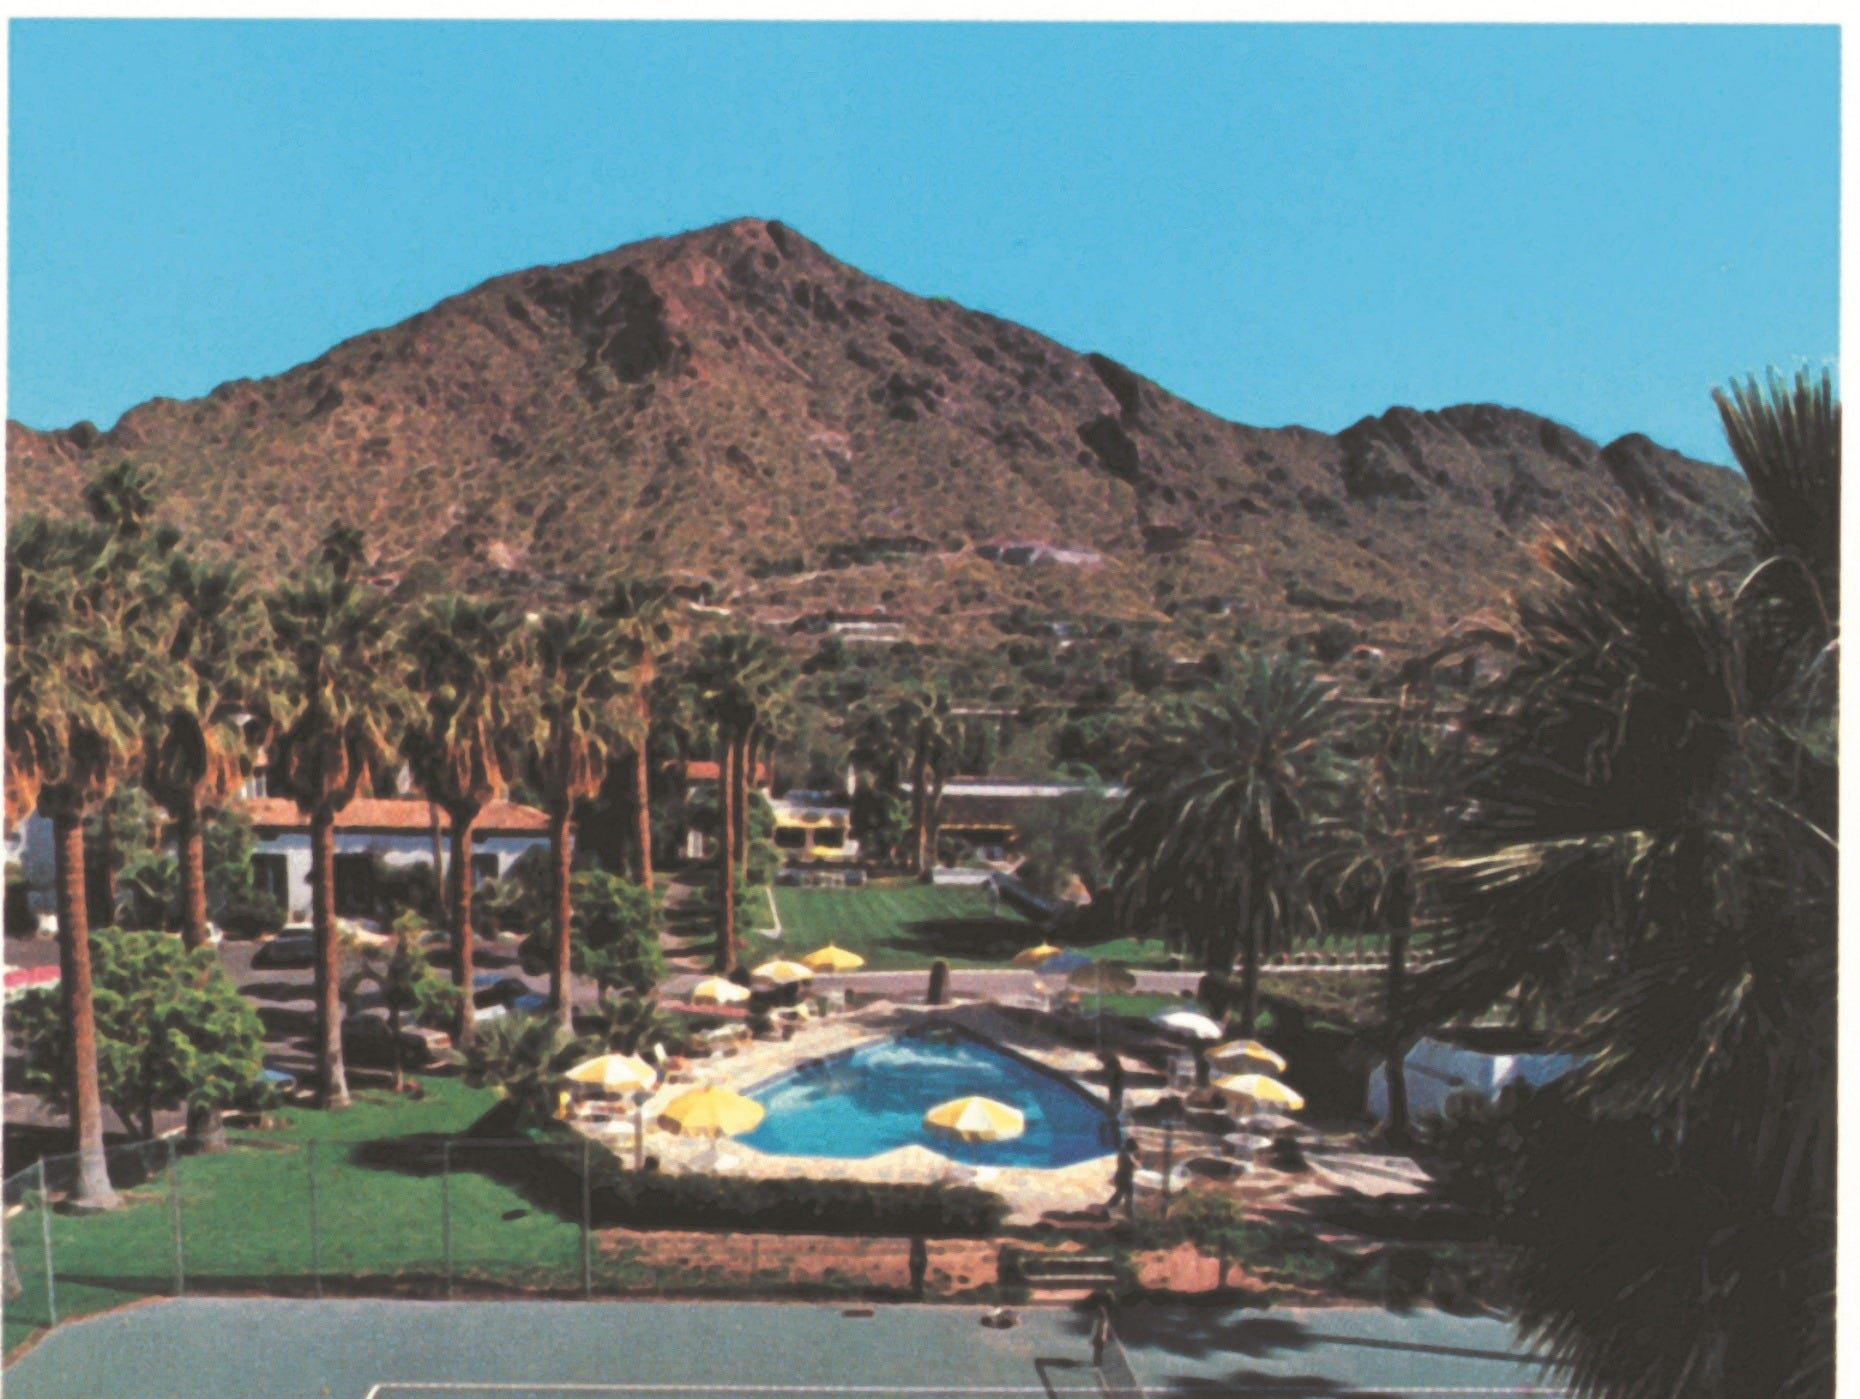 An historic look at the Royal Palms Resort and Spa's heart-shaped pool and adjacent tennis court.